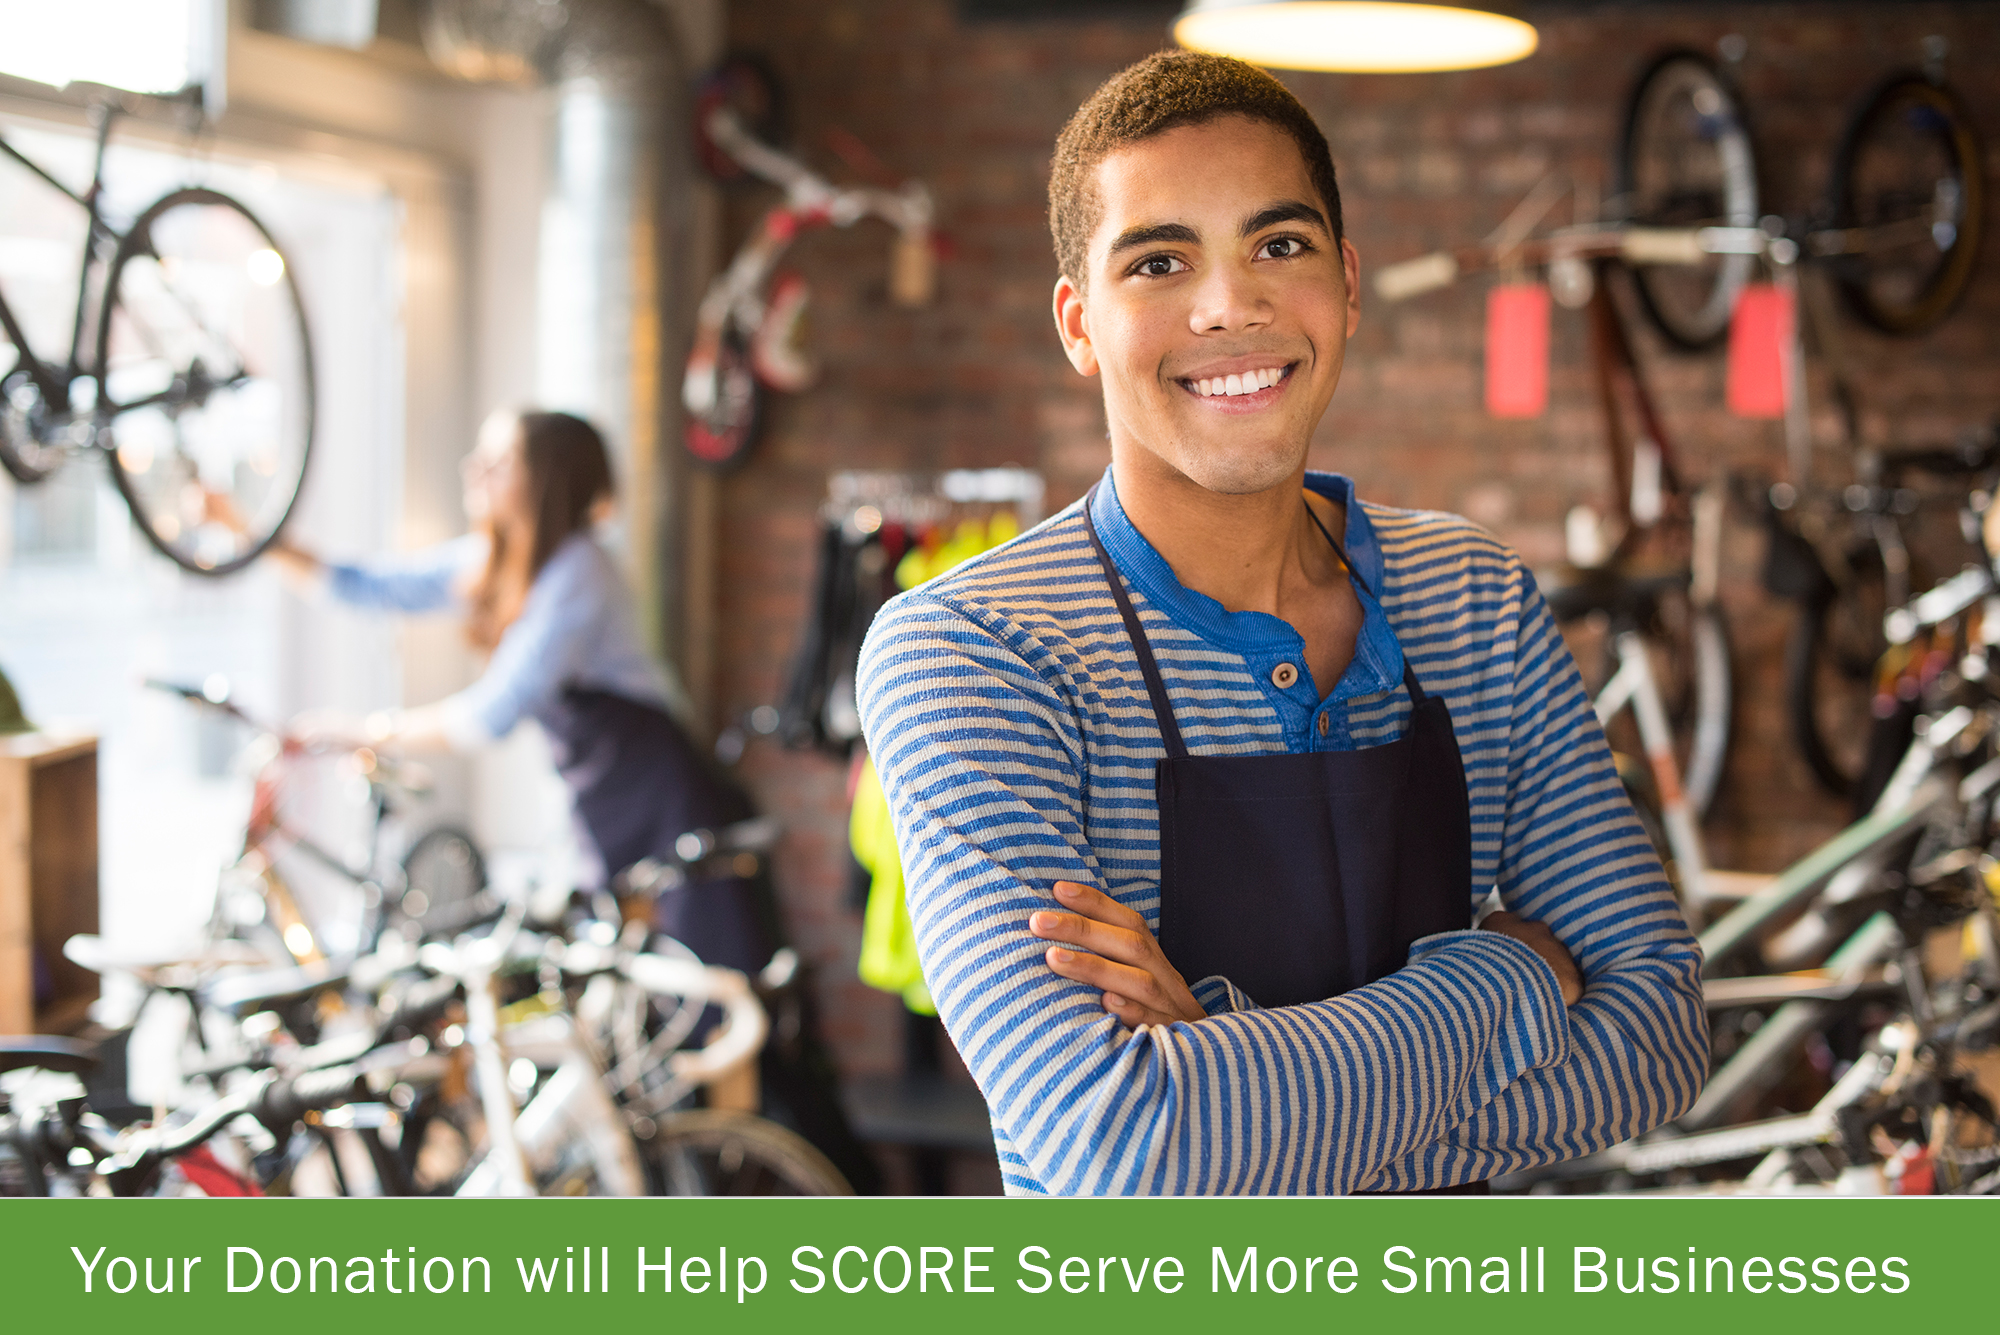 Help SCORE serve more small businesses